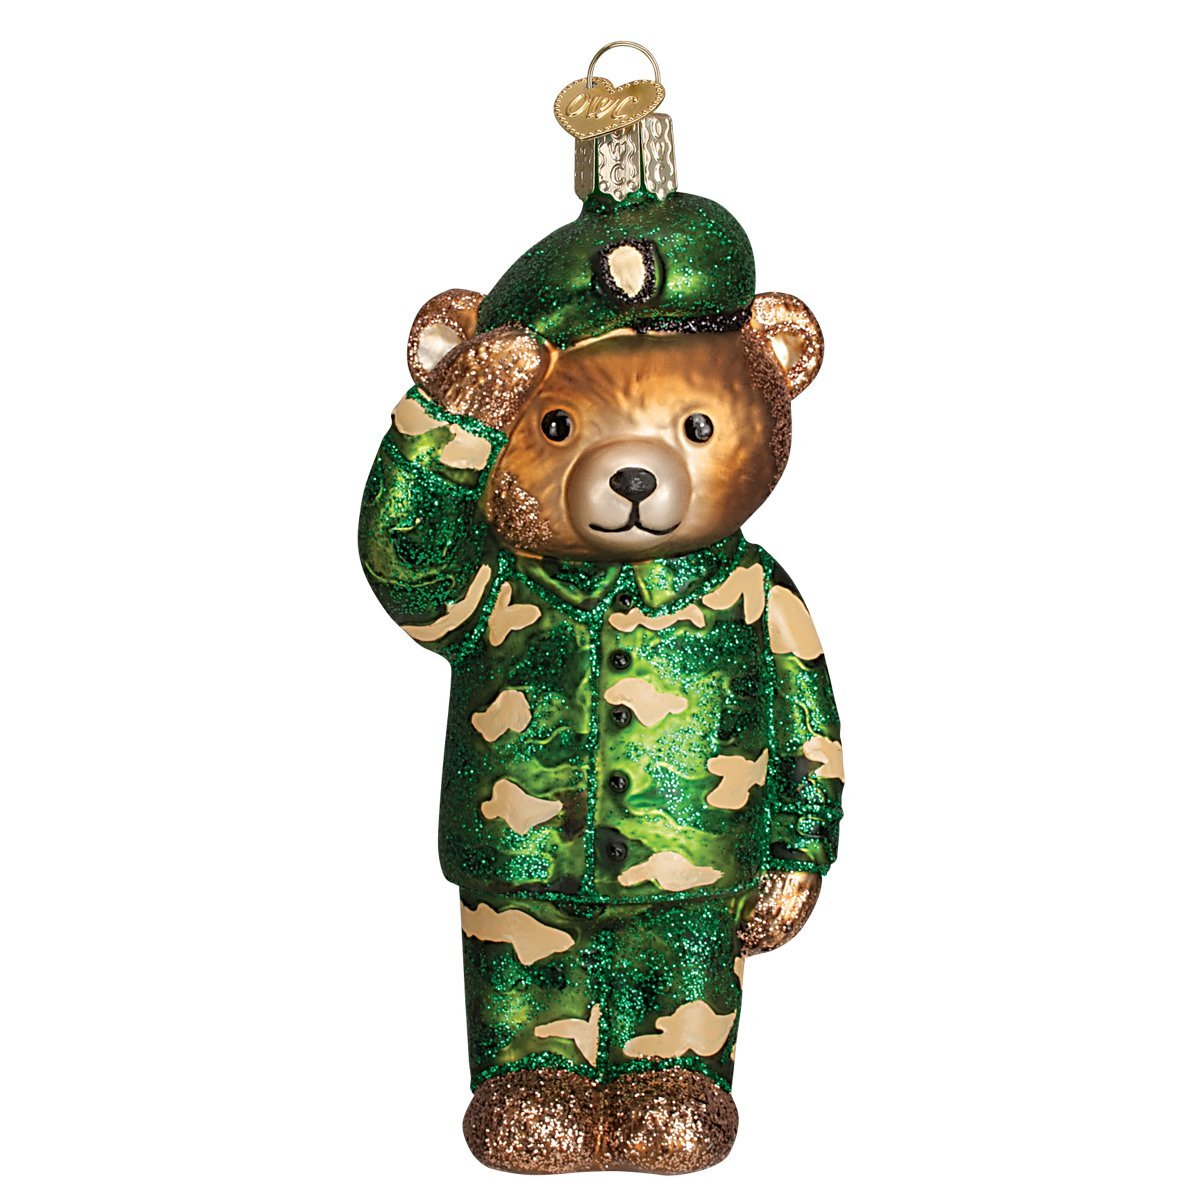 Old World Christmas Ornaments: Army Bear Glass Blown Ornaments for Christmas Tree